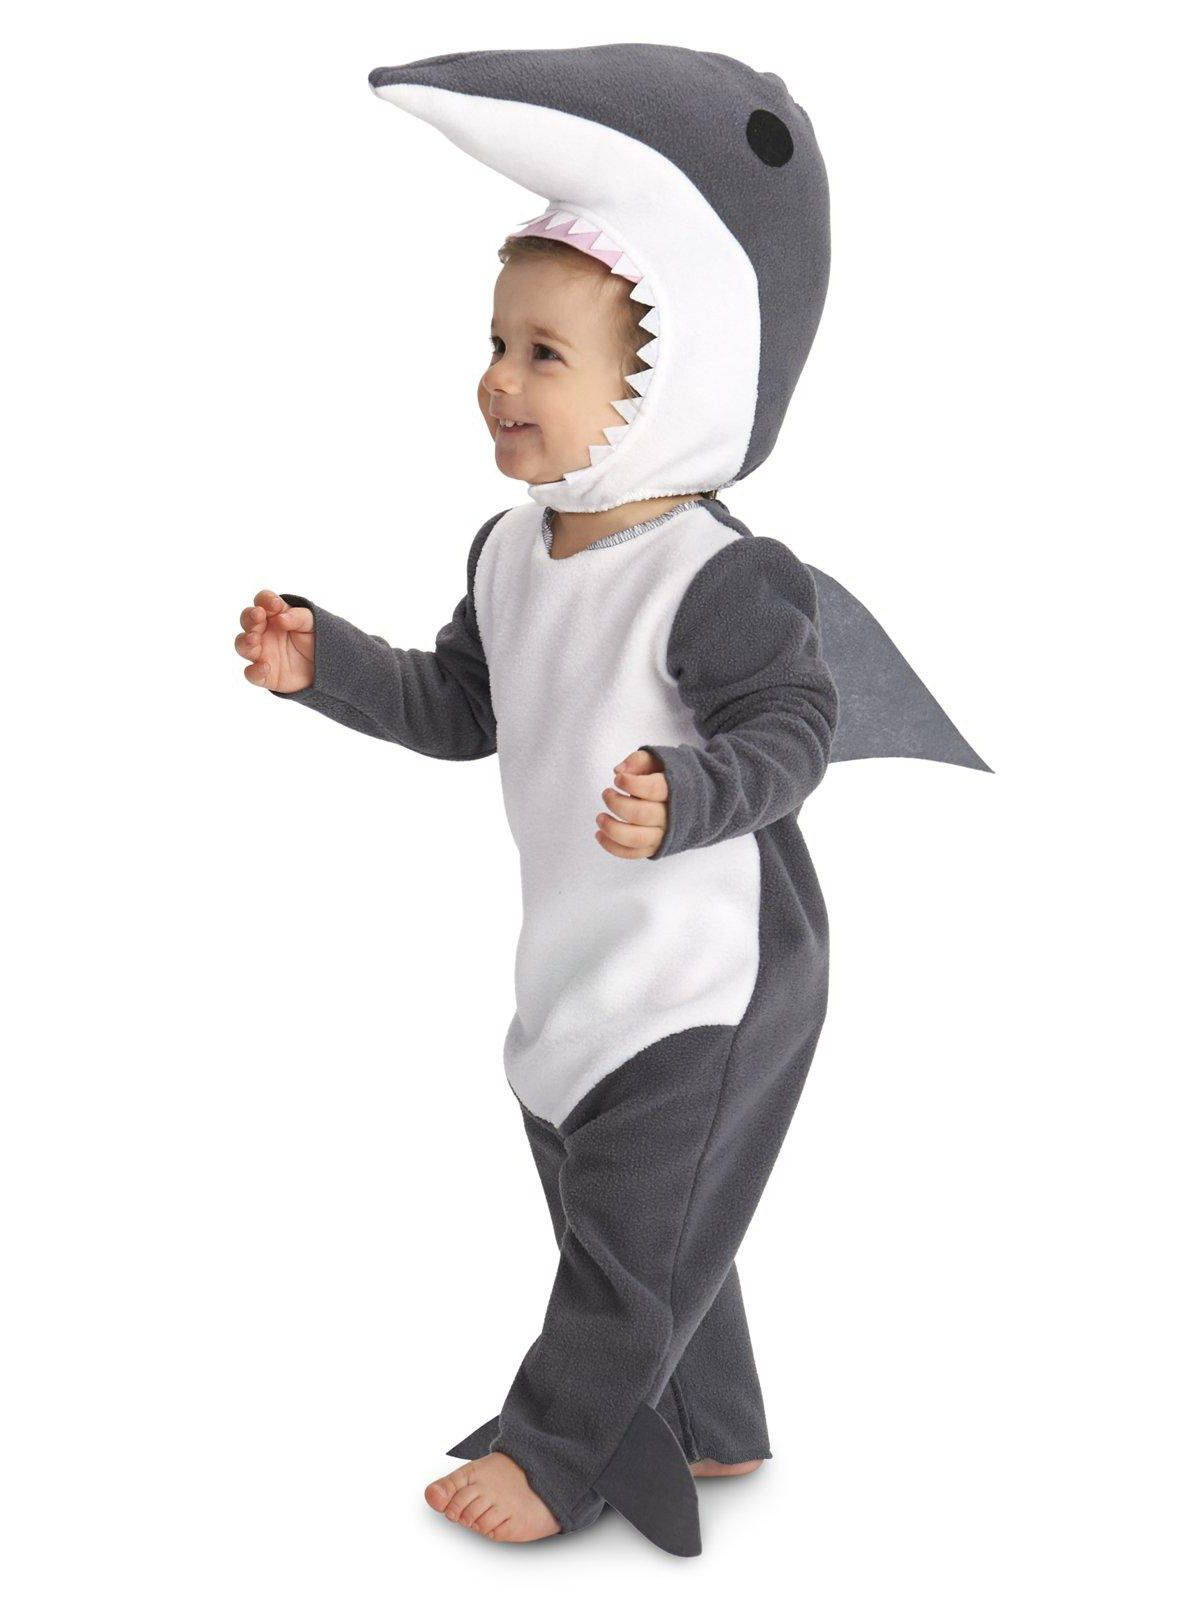 Shark Costume For Babies  sc 1 st  Wholesale Halloween Costumes & Shark Costume For Babies - Baby/Toddler Costumes for 2018 ...